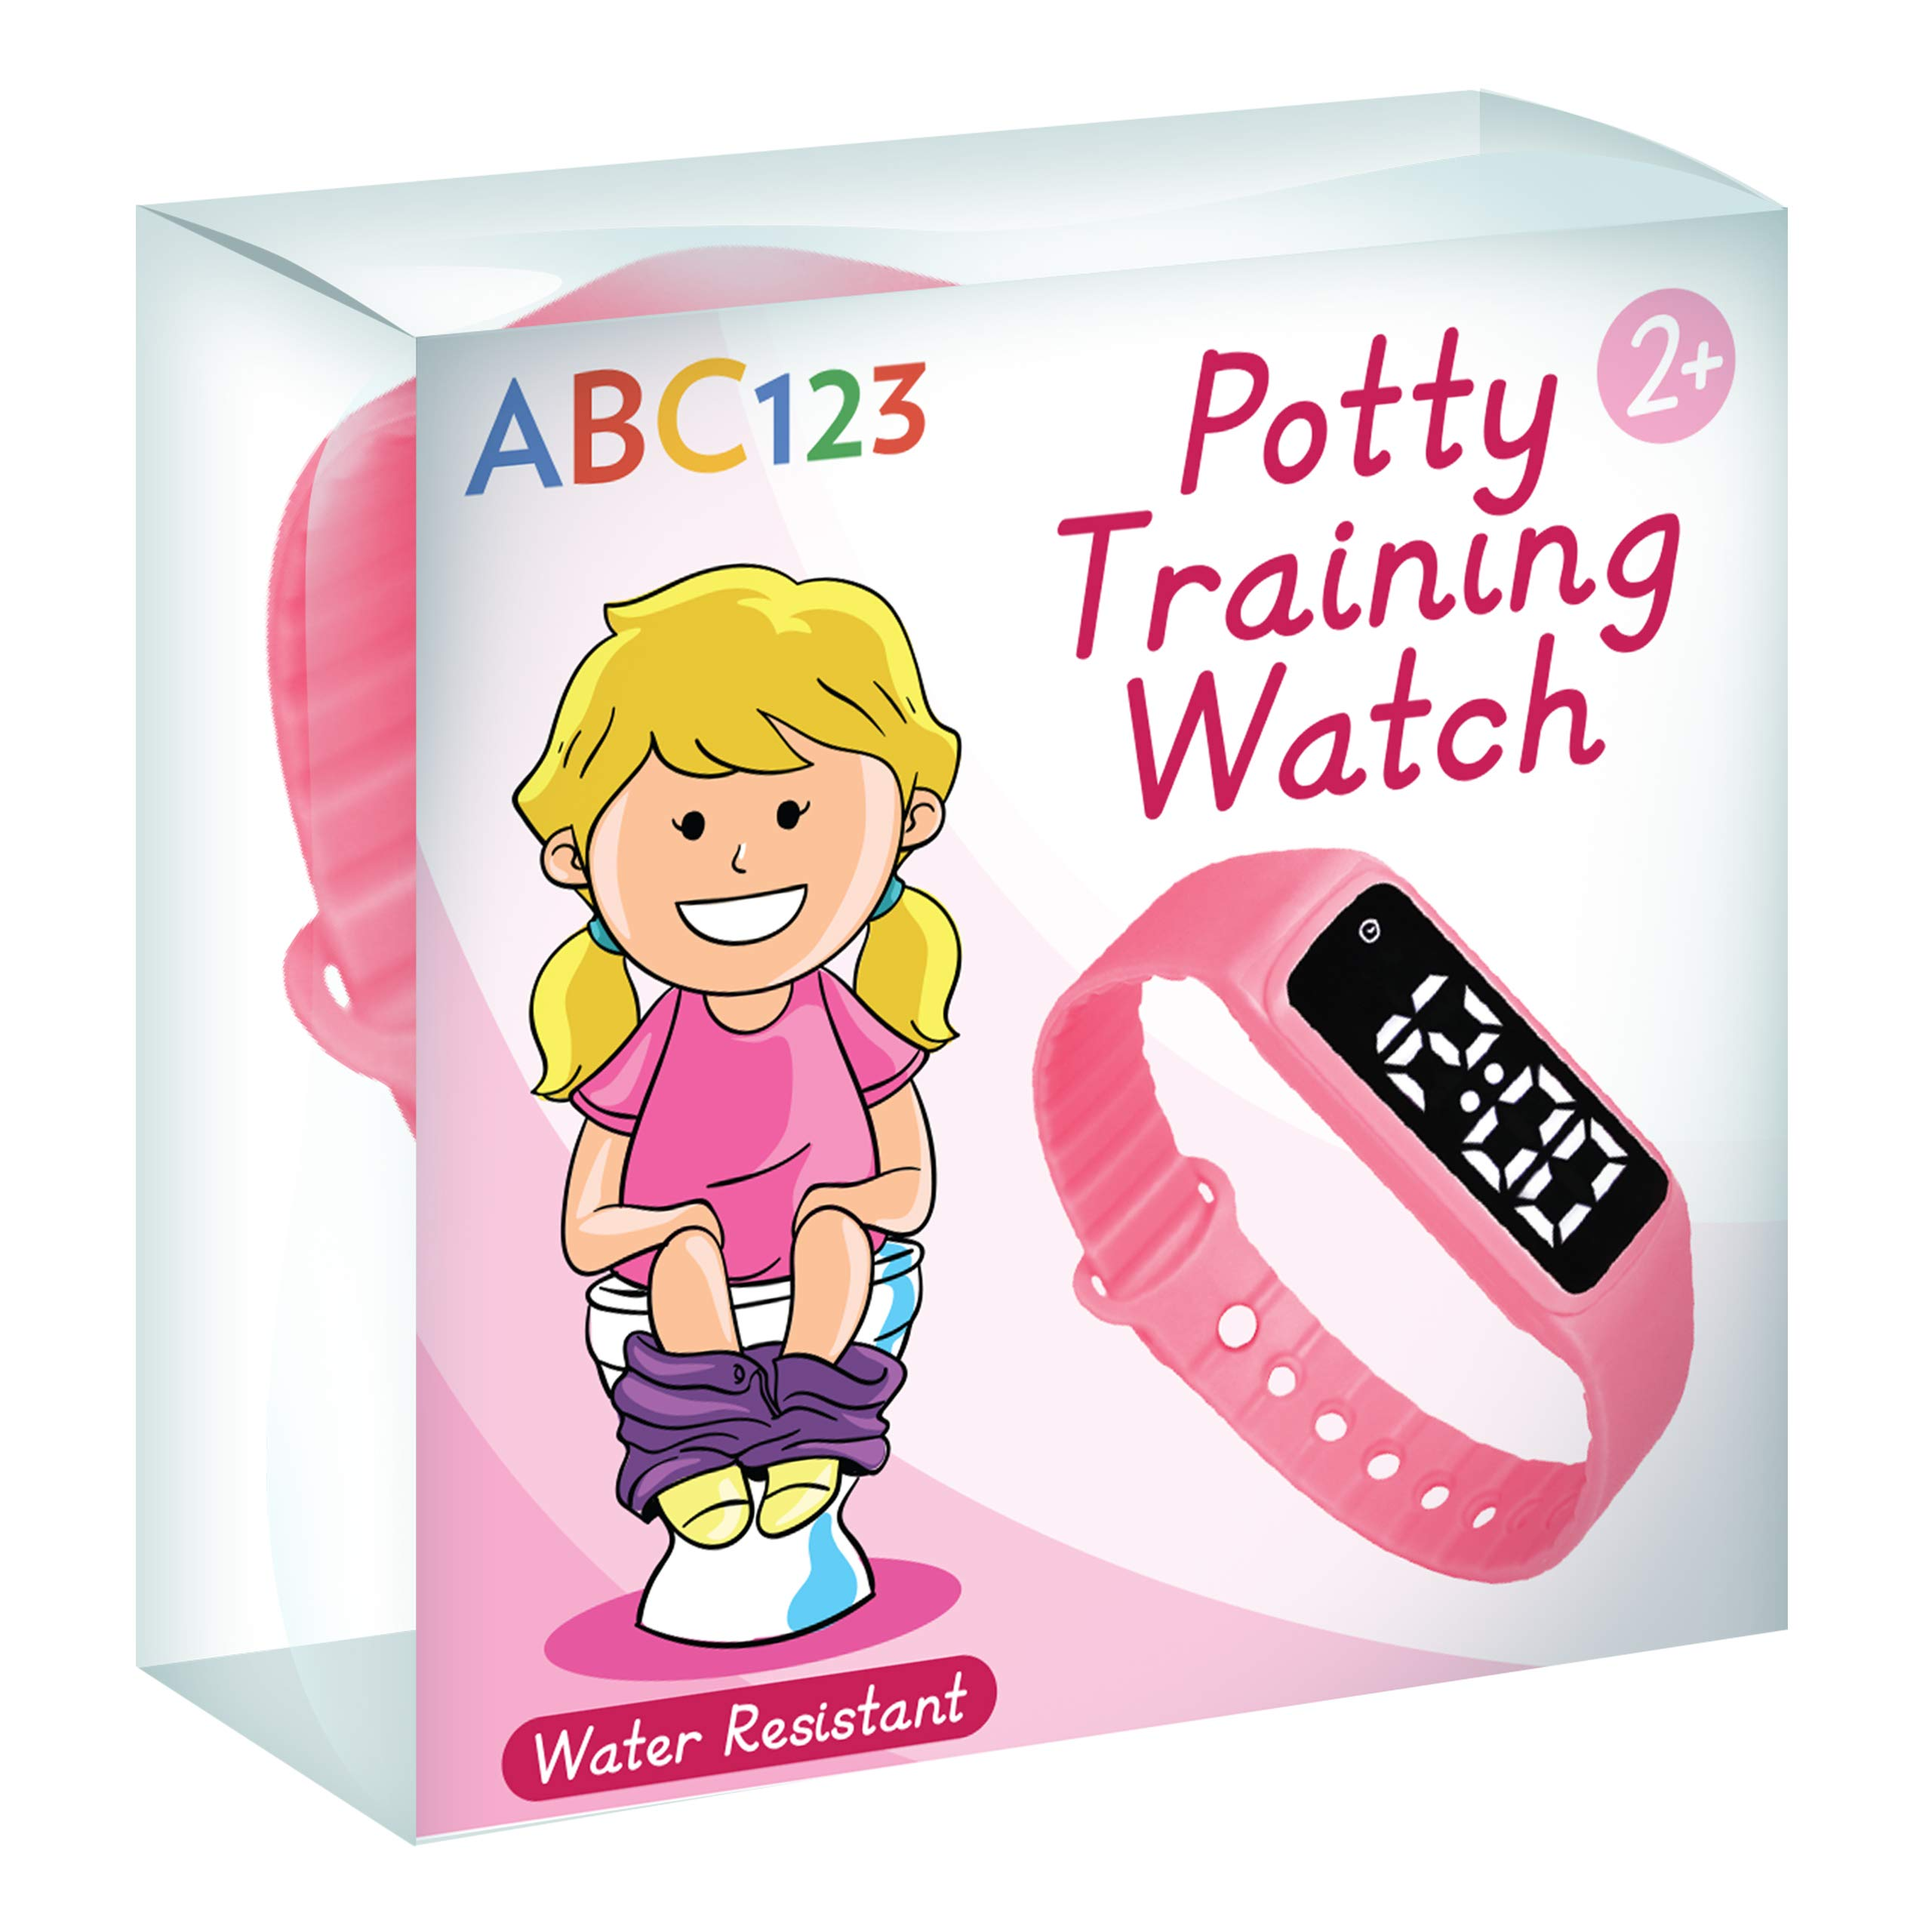 d10e7480b5d9 ABC123 Potty Training Watch - Baby Reminder Water Resistant Timer for  Toilet Training Kids   Toddler